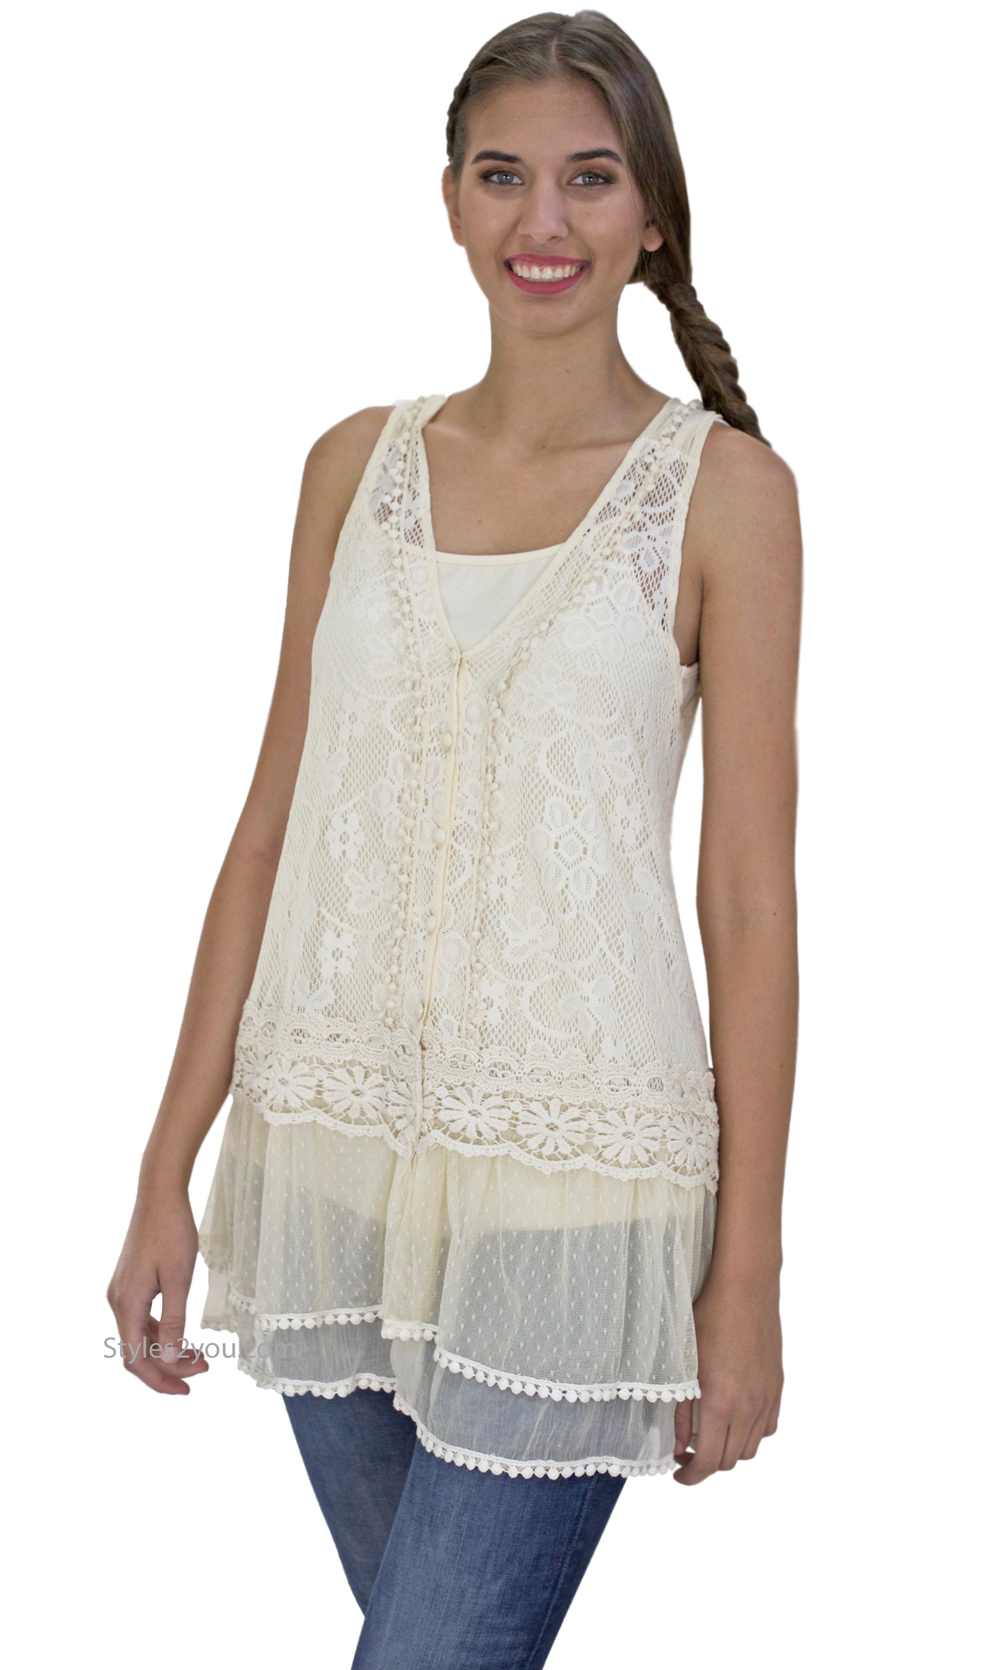 Lady Chantal Vintage Victorian Lace Top, Two Pieces In